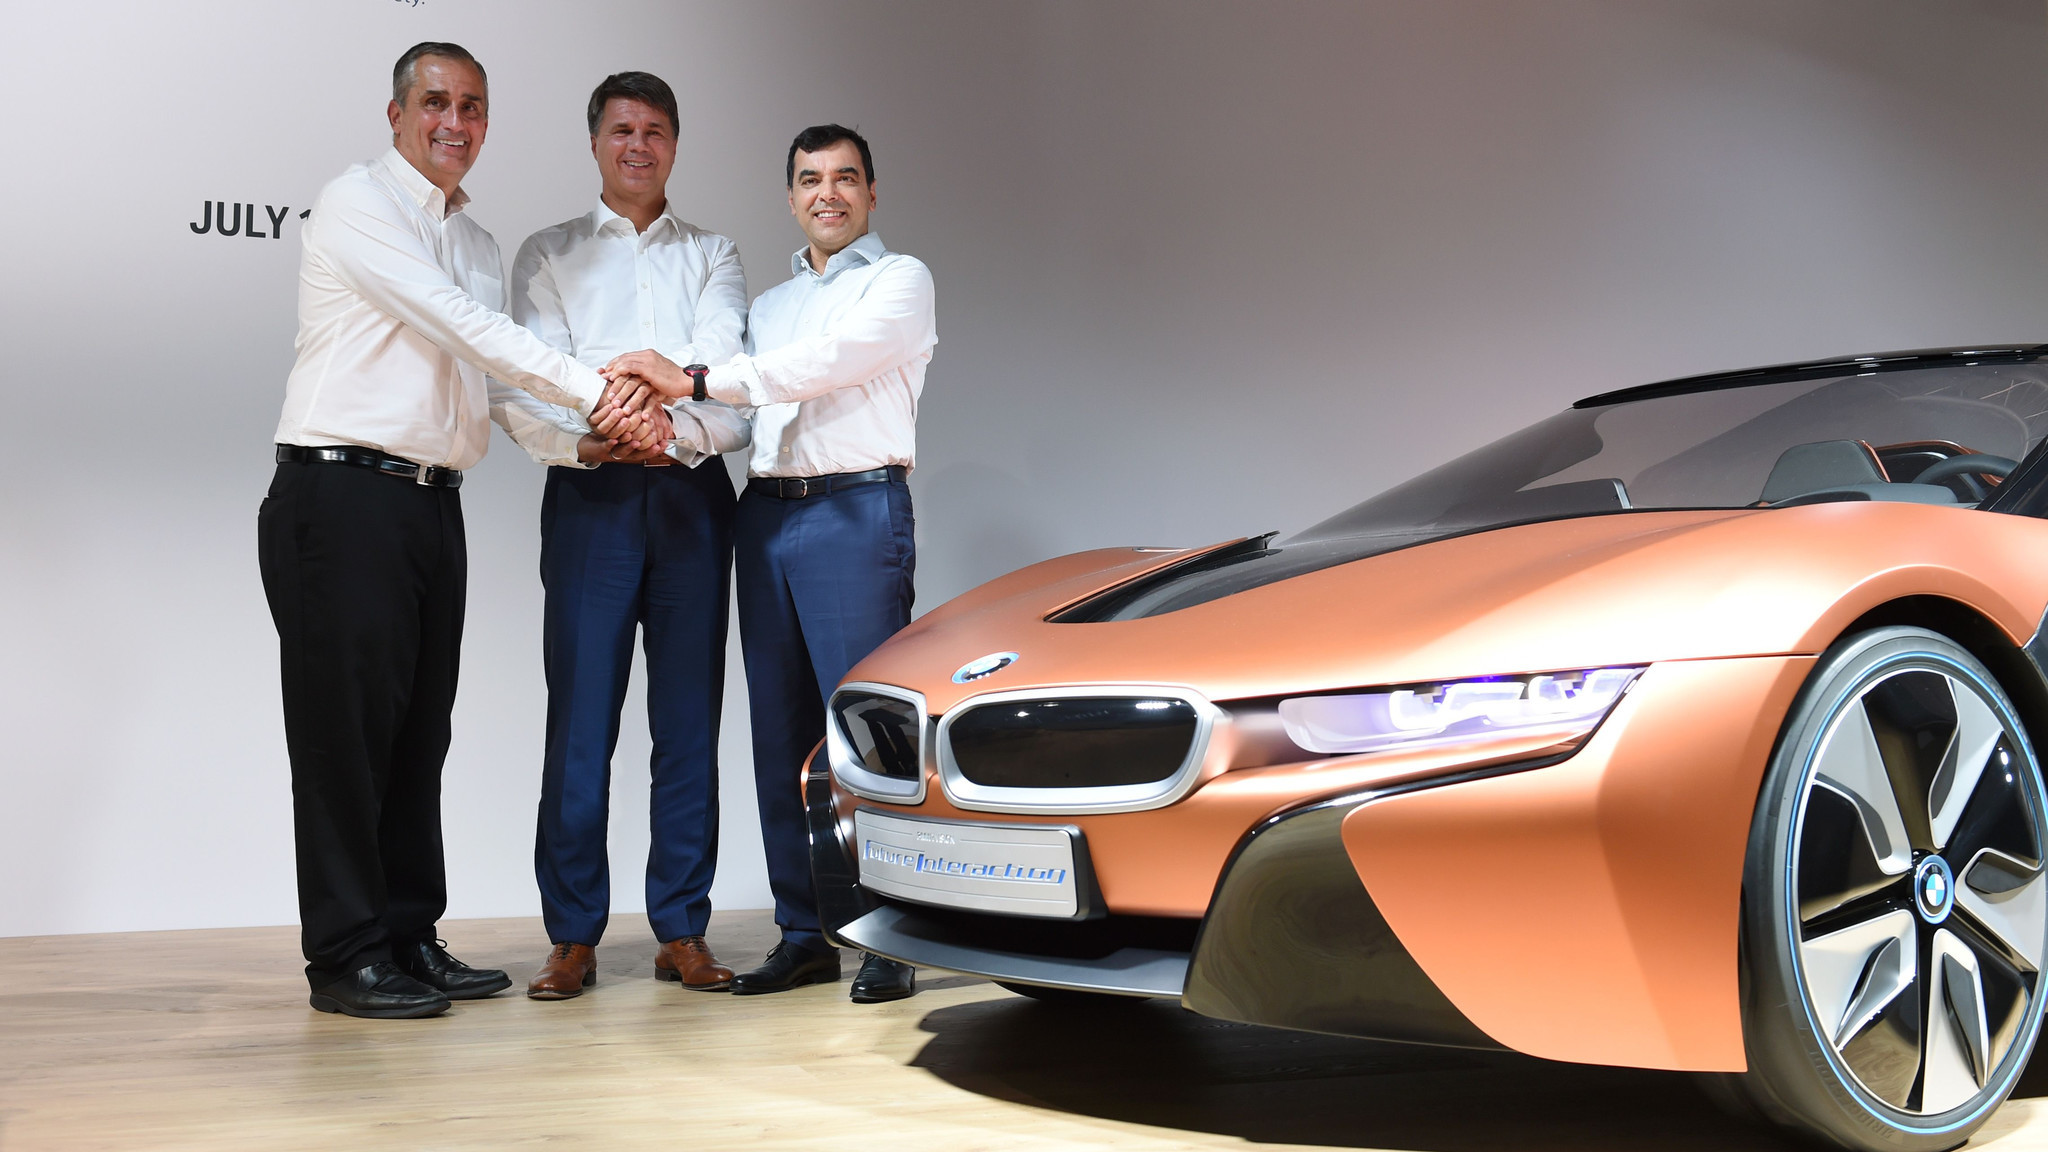 Intel CEO Brian Krzanich, left, BMW CEO Harald Krueger and Amnon Shashua, chairman of Mobileye NV, pose after a news conference in Munich on July 1, 2016.